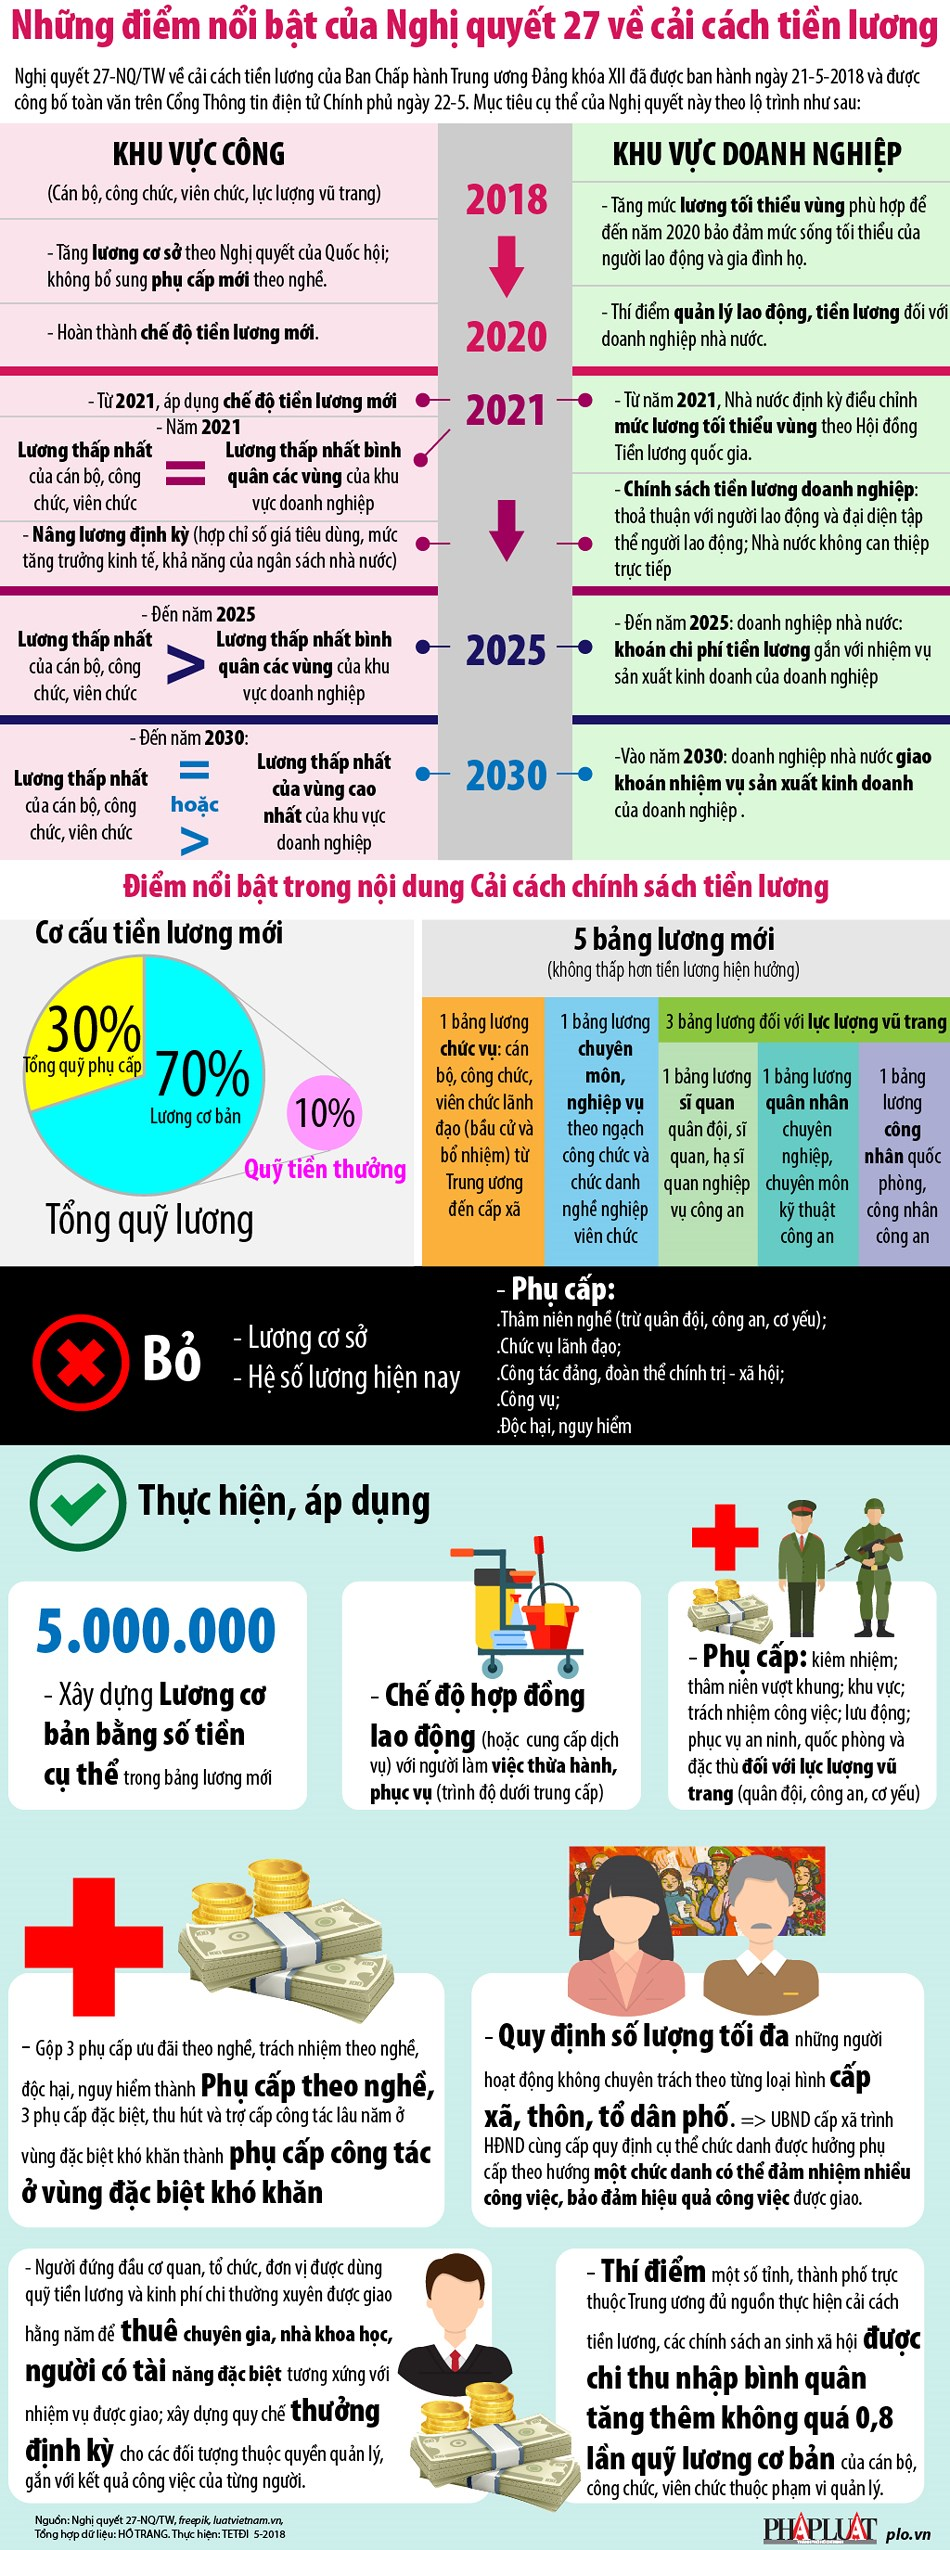 infographic: sap toi tien luong se thay doi nhu the nao? hinh anh 1